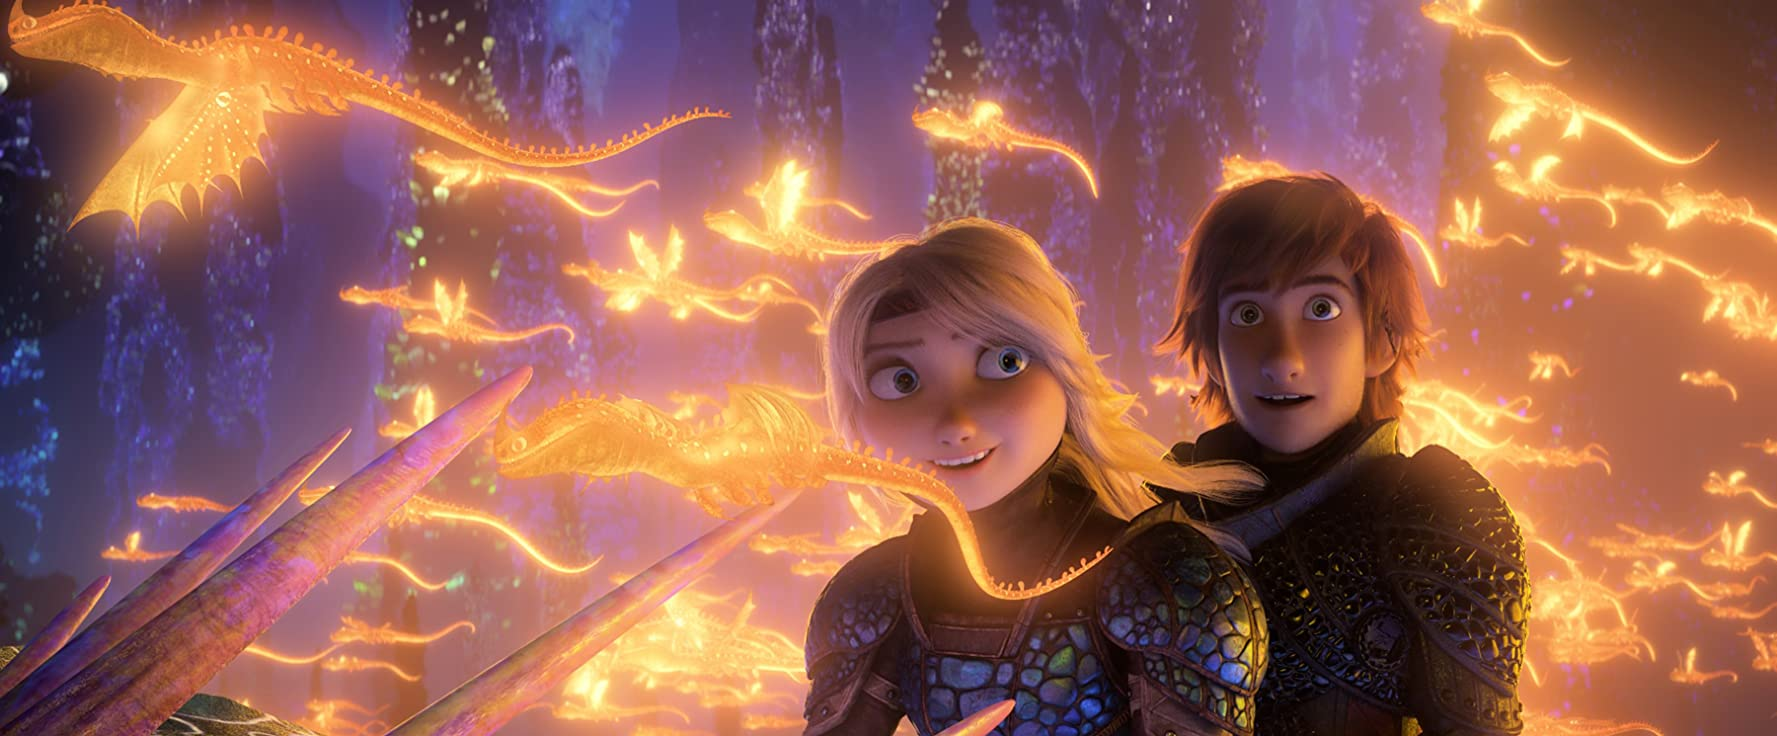 Jay Baruchel and America Ferrera in How to Train Your Dragon: The Hidden World (2019)